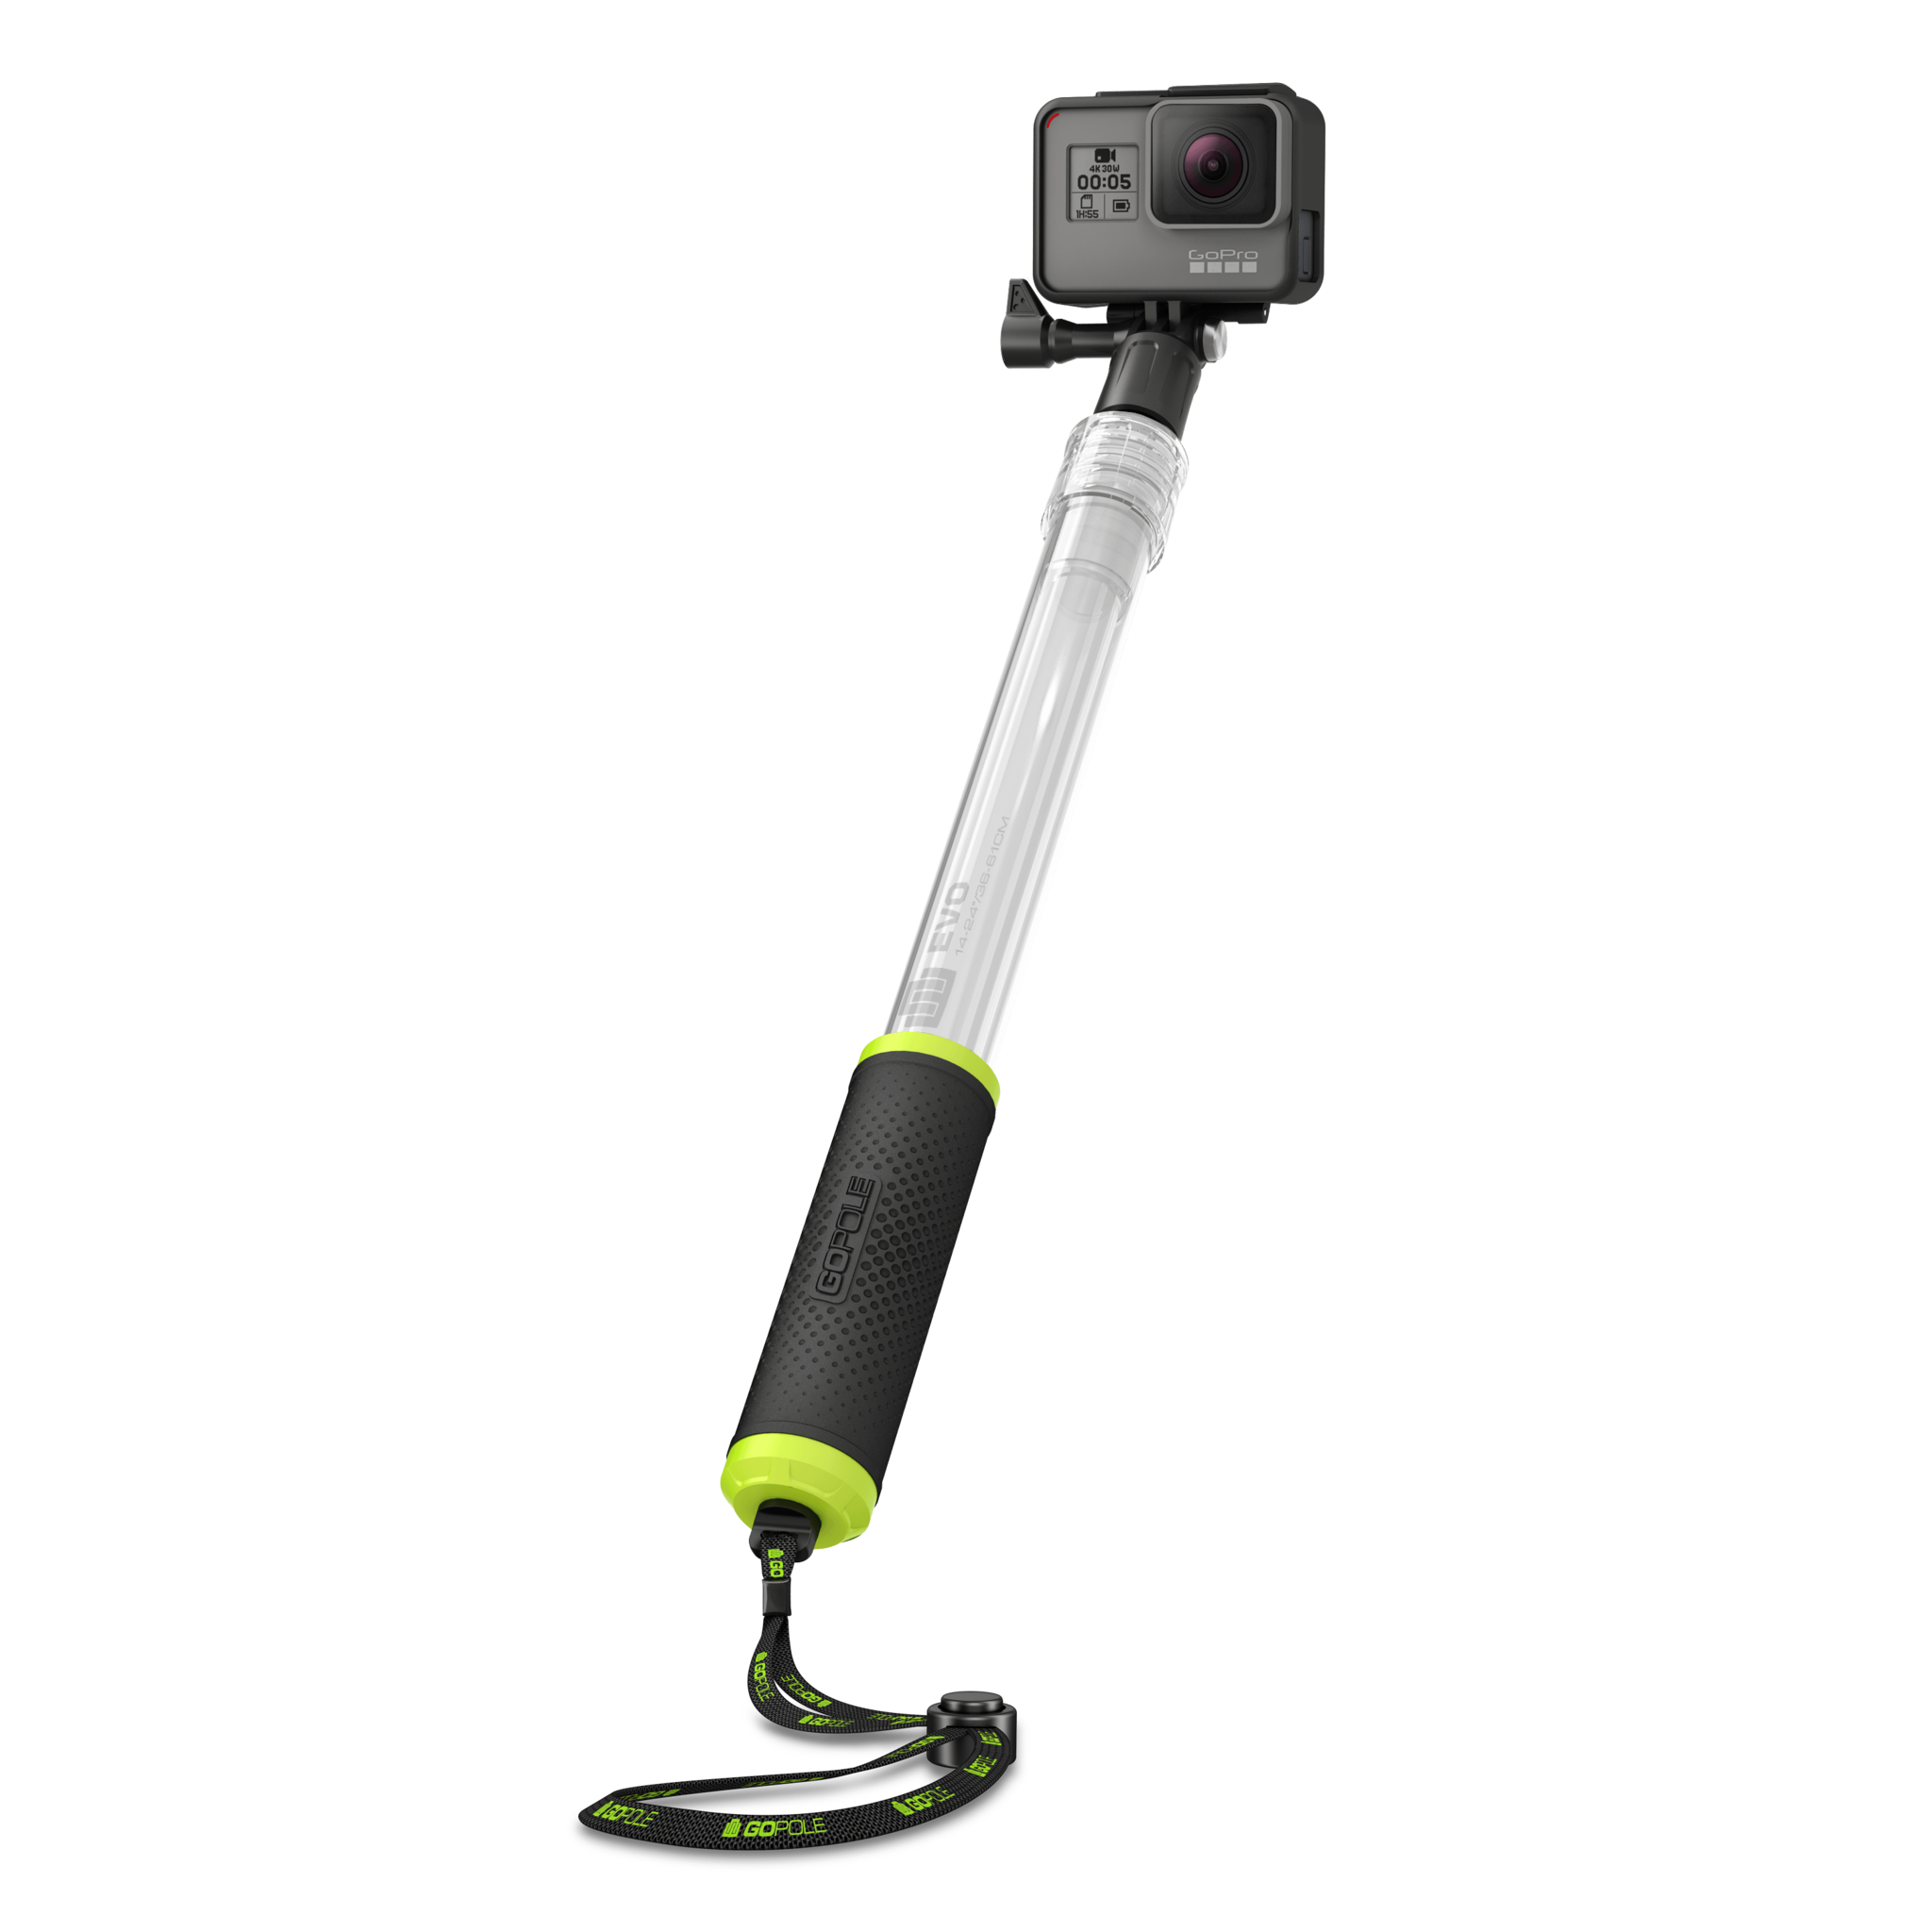 GoPole Evo - GoPro Floating Extension Pole 14-24 Inches